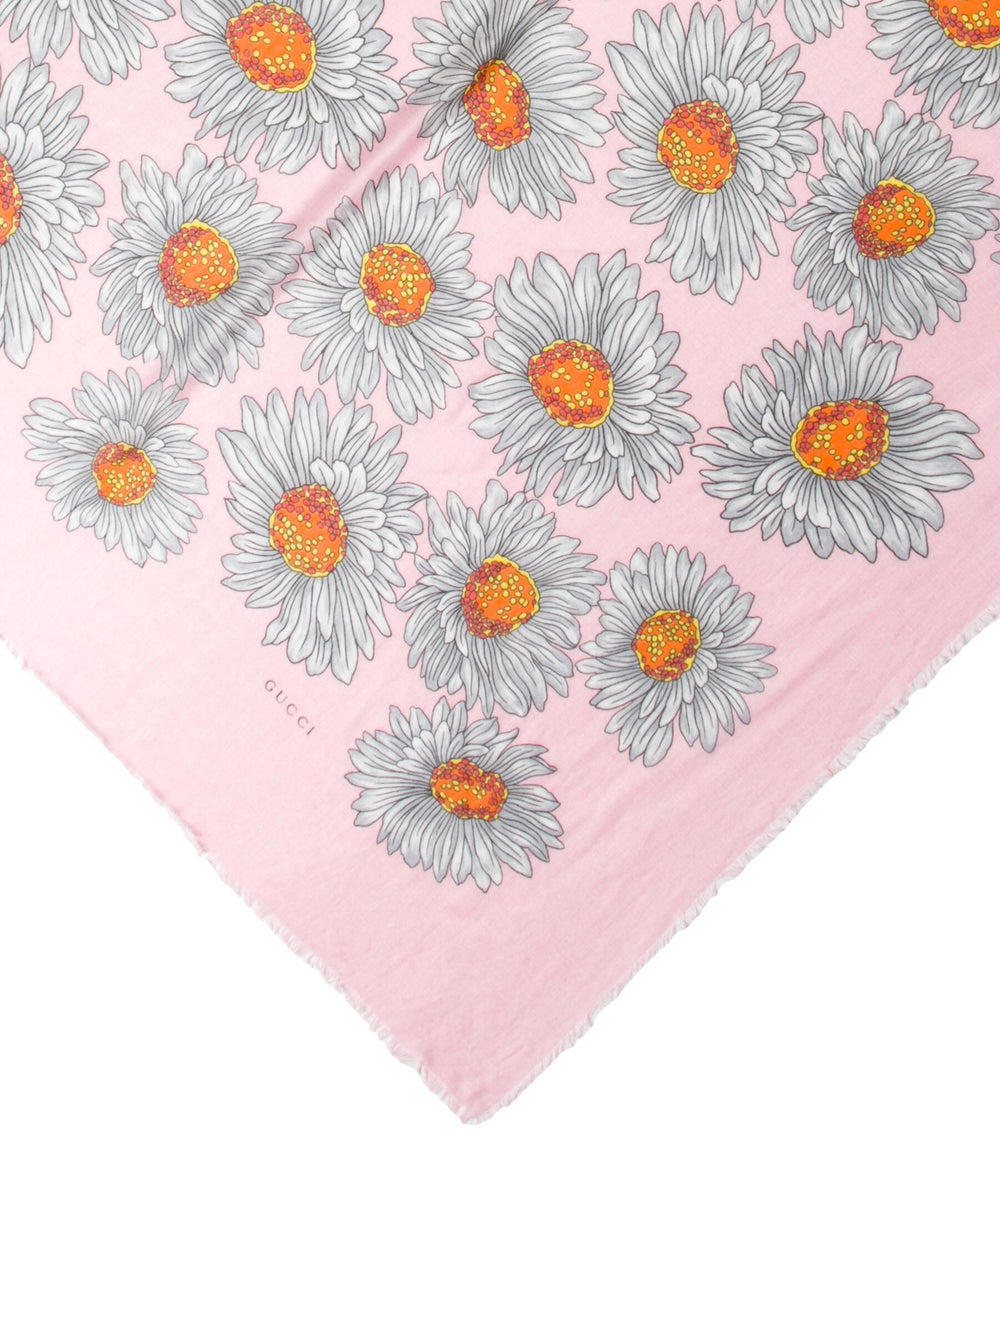 Gucci Floral Print Scarf Pink - image 2